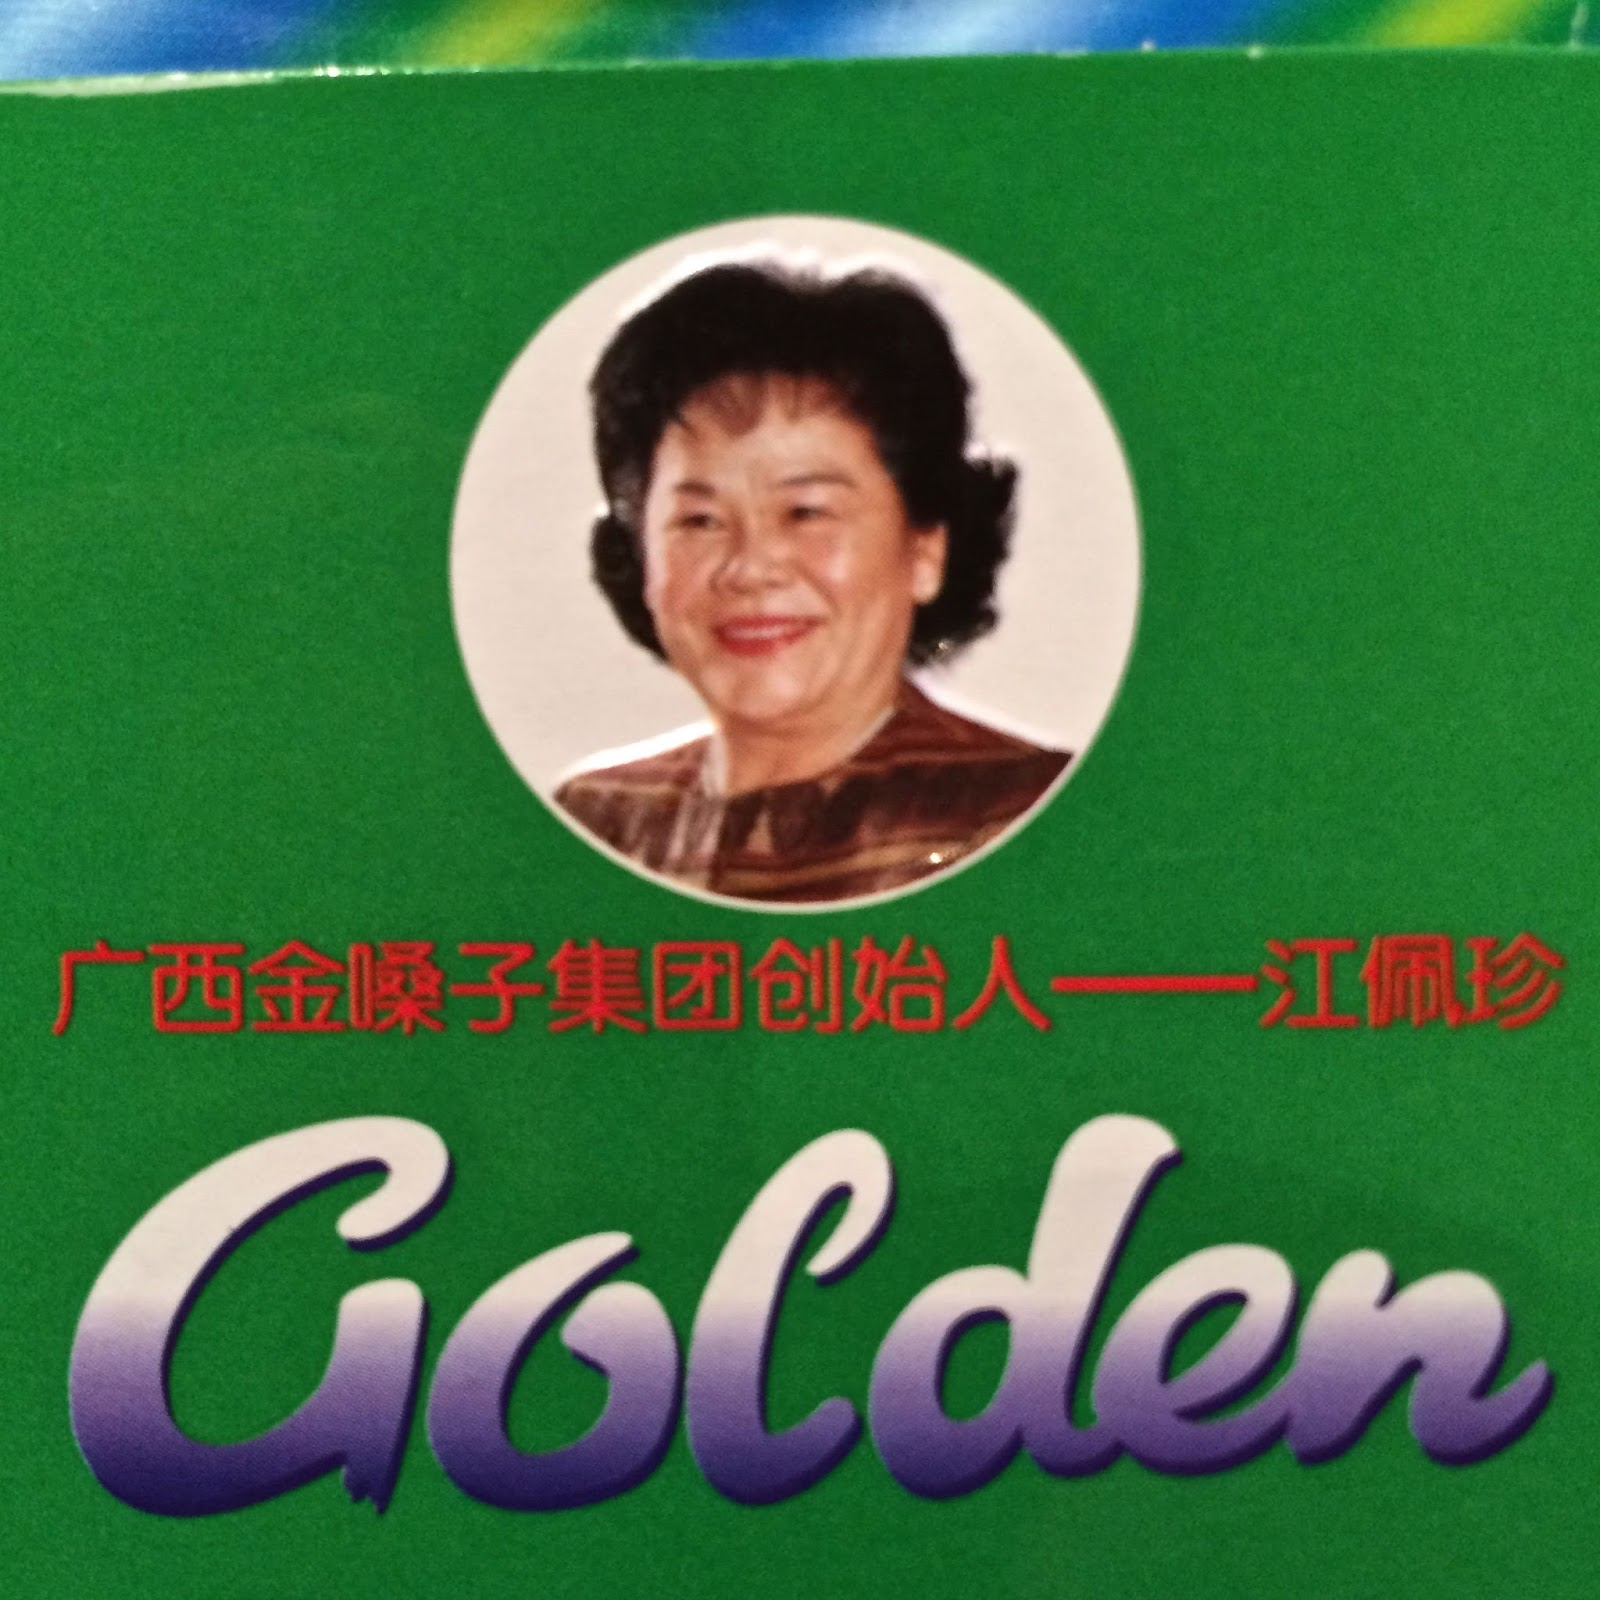 Foreigners Cabinet Of Chinese Curiosities The Marvelous Inside Golden Throat Lozenge Whos This Woman Whats Become Black White Guy One With Comb Over Whom Ive Come To Trust As Almighty Reliever Cold Misery